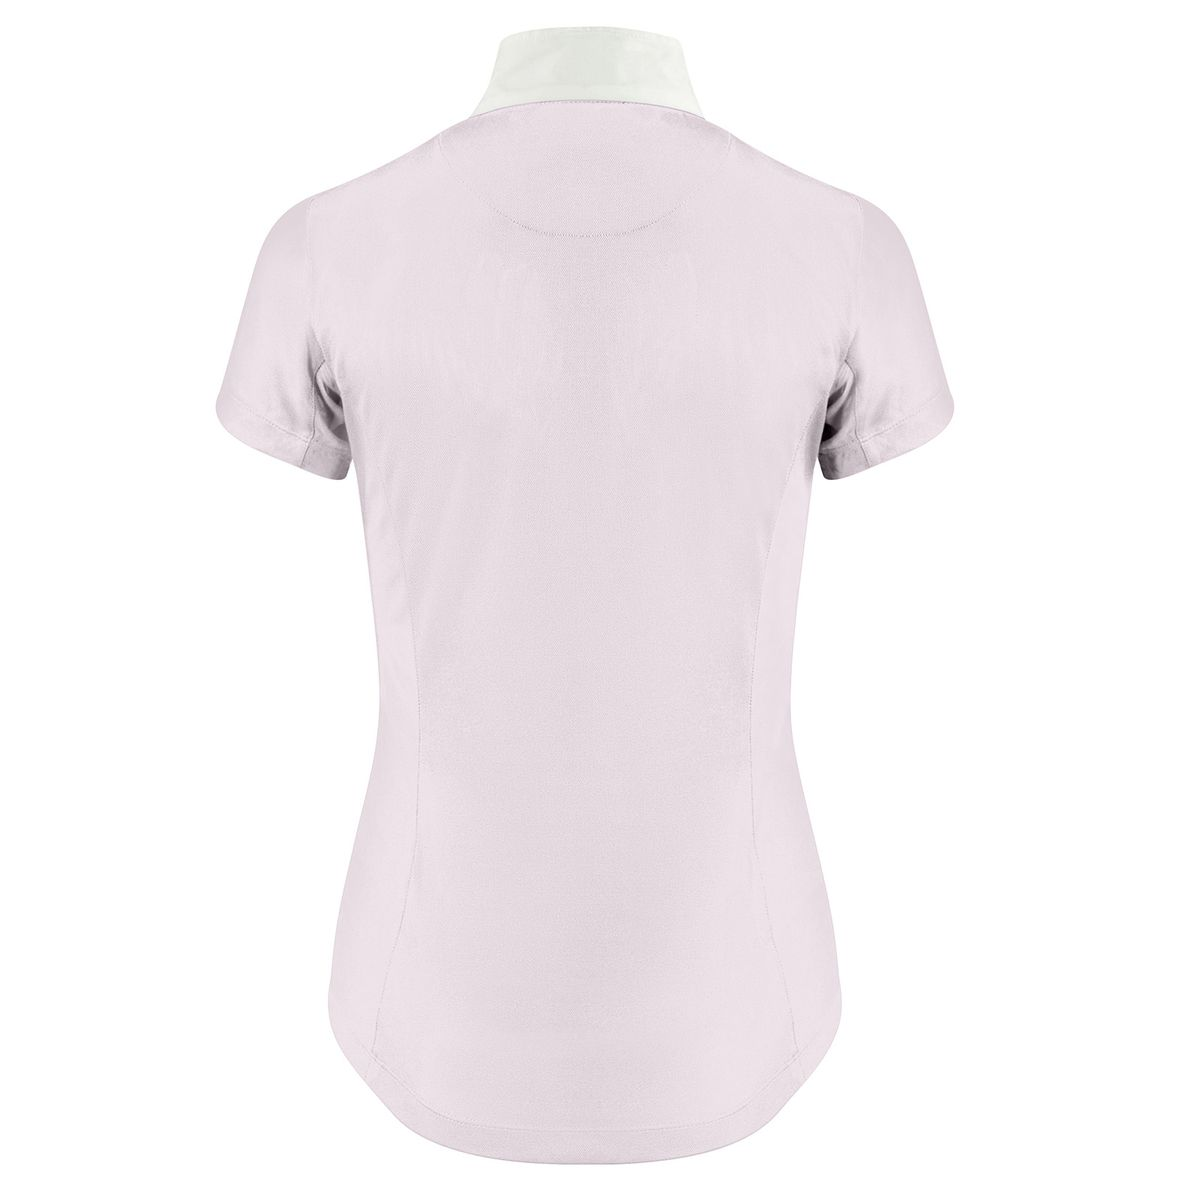 Horze-Blaire-Women-039-s-Short-Sleeve-Functional-Show-Shirt-with-UV-Protection thumbnail 9